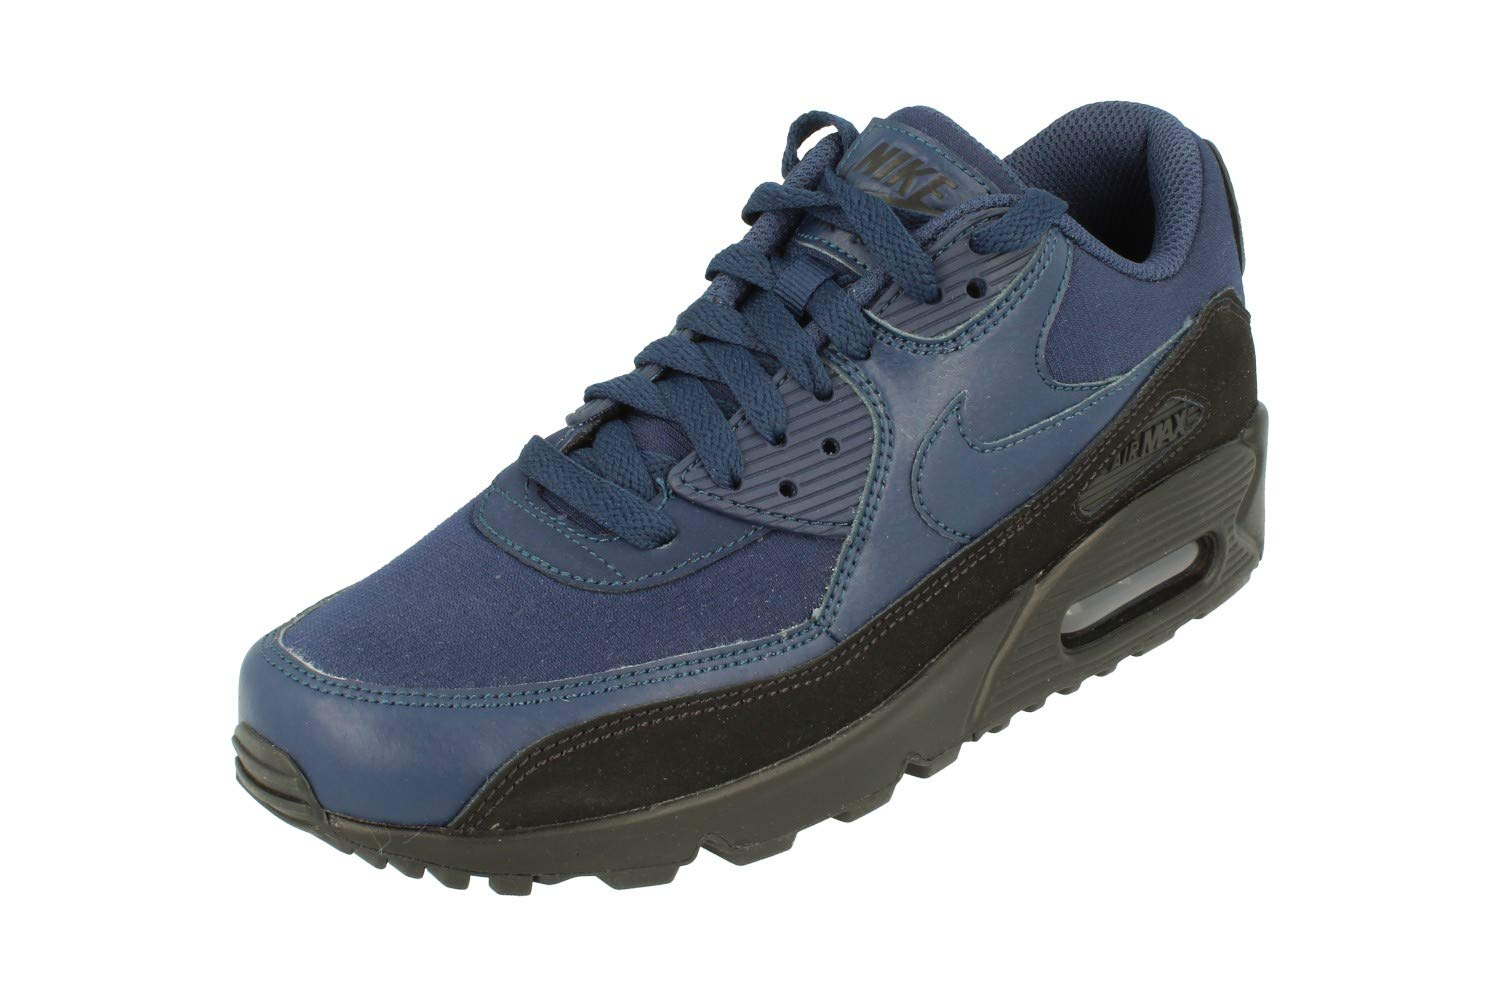 Nike Air Max 90 Essential Mens Running Trainers AJ1285 Sneakers Shoes (UK 6 US 7 EU 40, Black Midnight Navy 007)